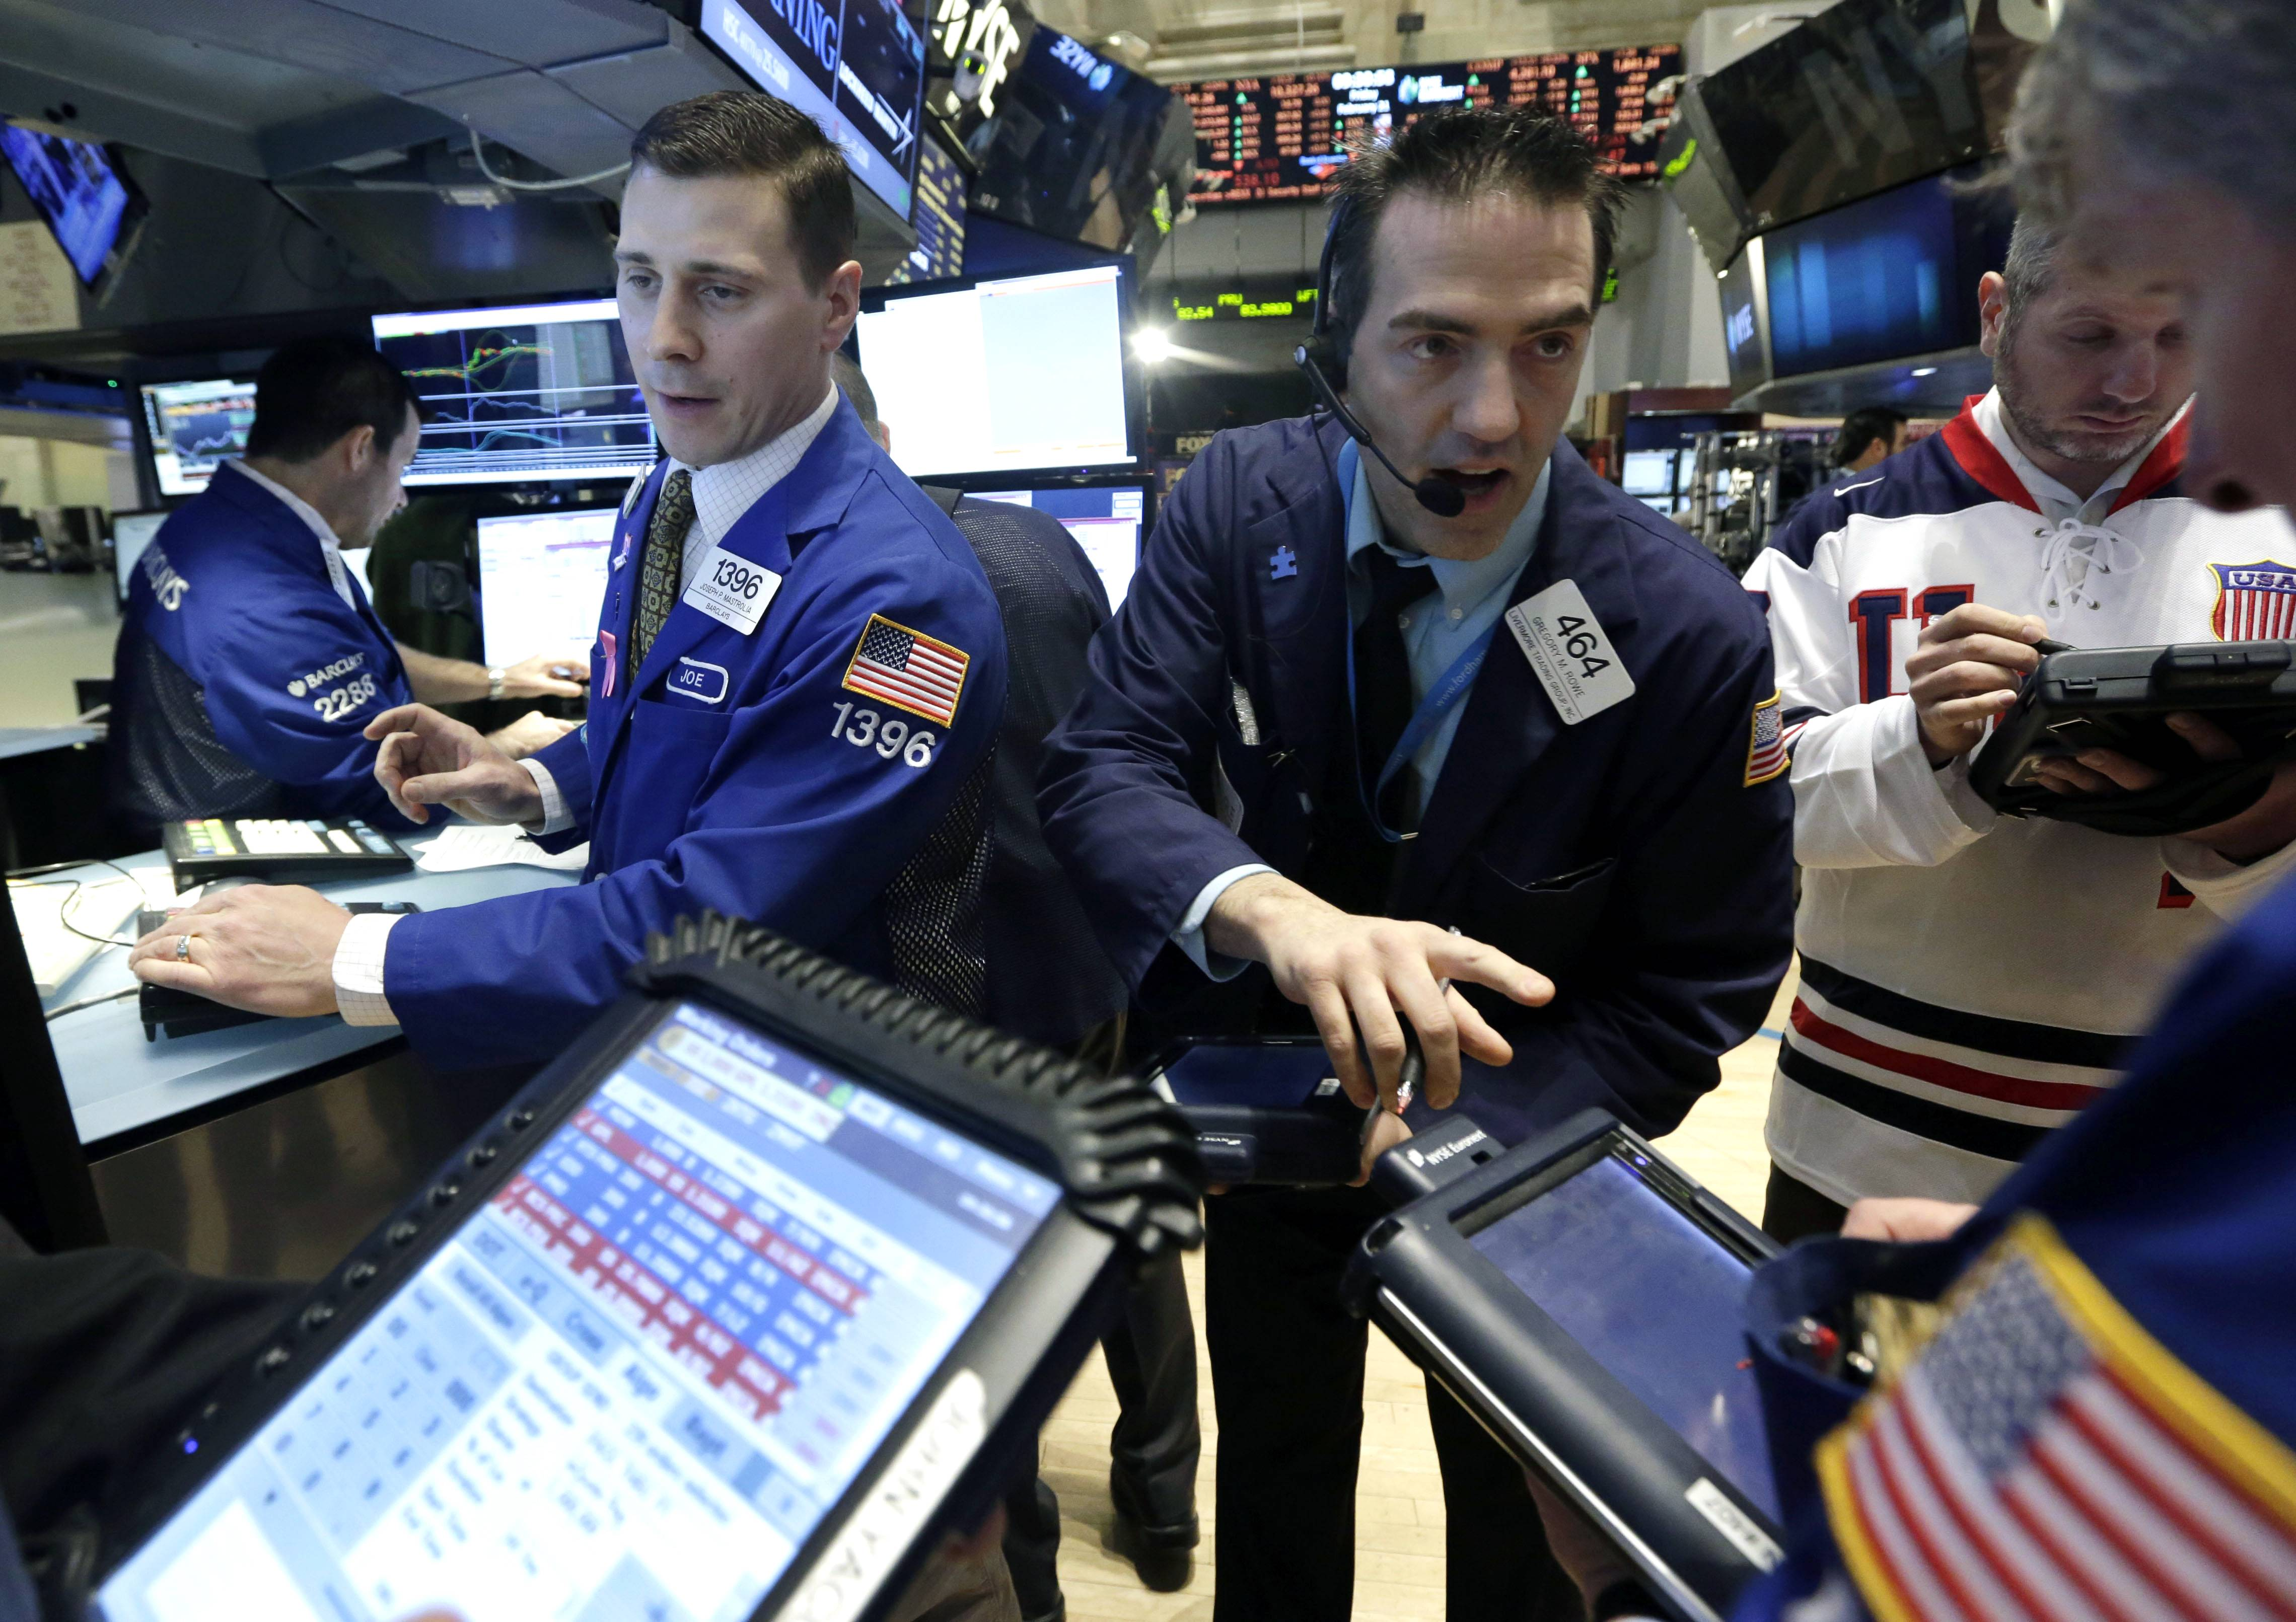 Stocks slid Monday, pulling the Standard & Poor's 500 Index down from a record, as a slowdown in Chinese exports fueled concern about global economic growth.